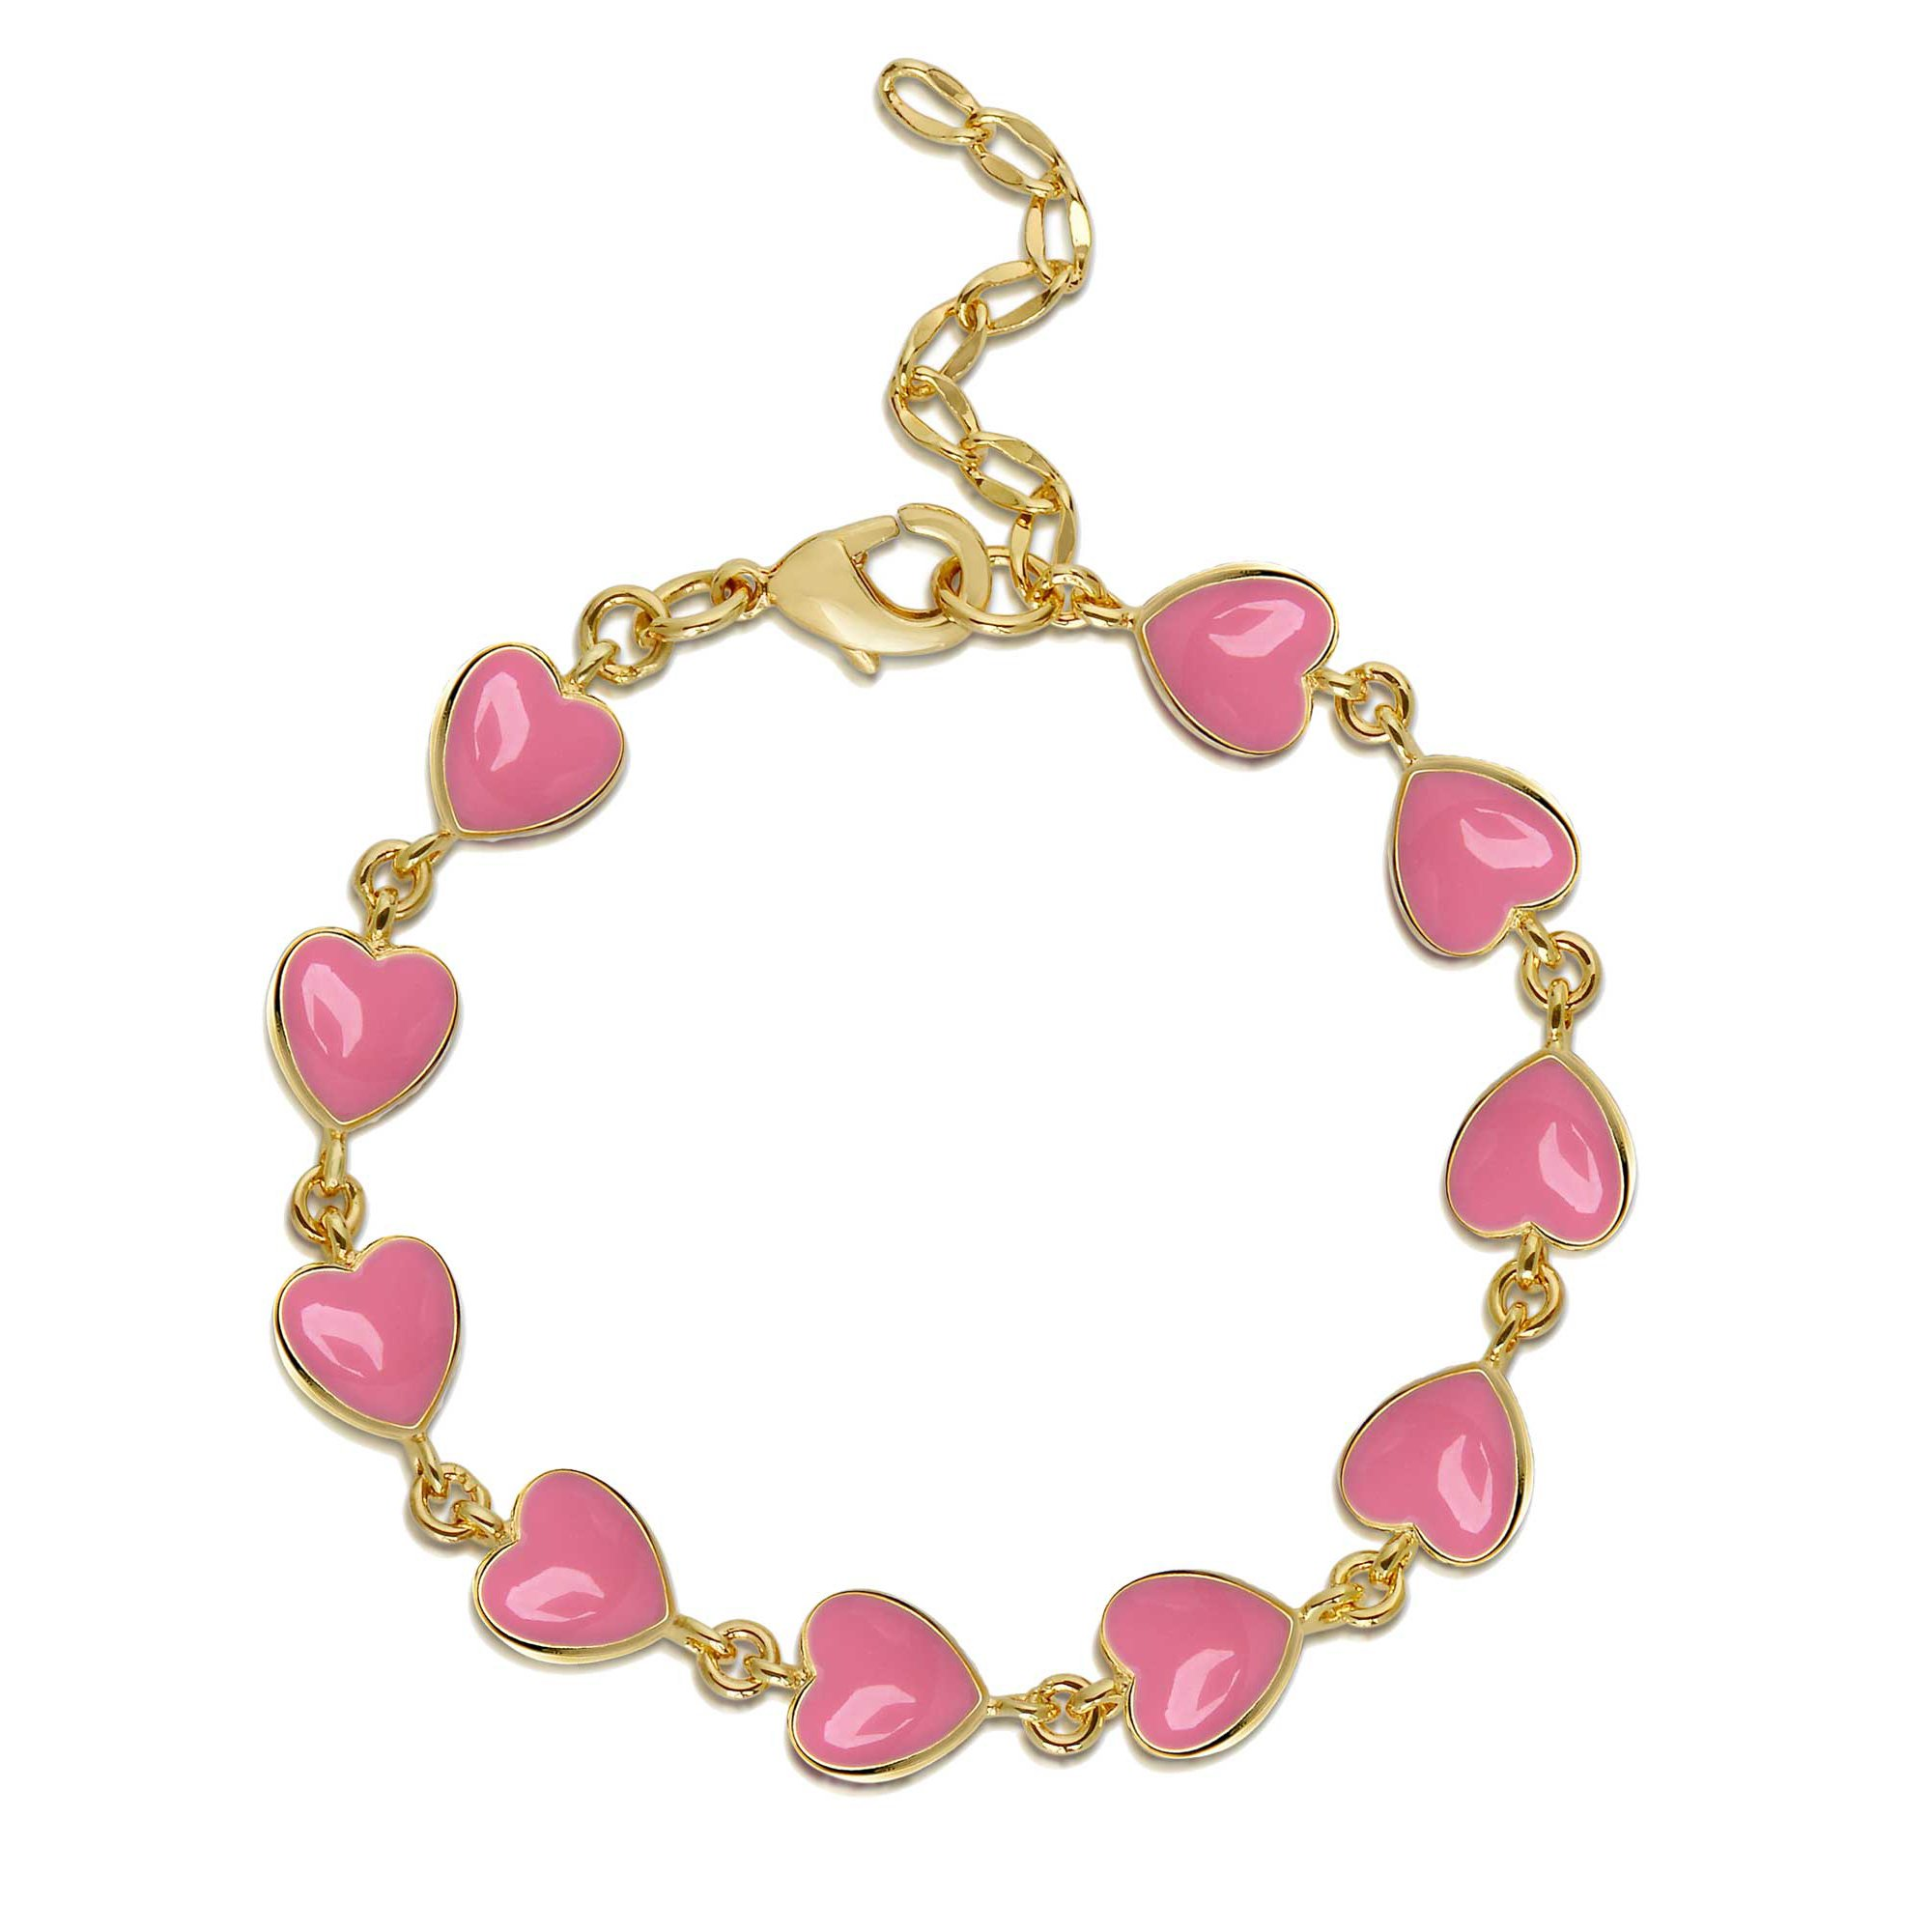 shires braclete best bracelet of pink heart diamond saphire the org dia white ruby gold ancgweb